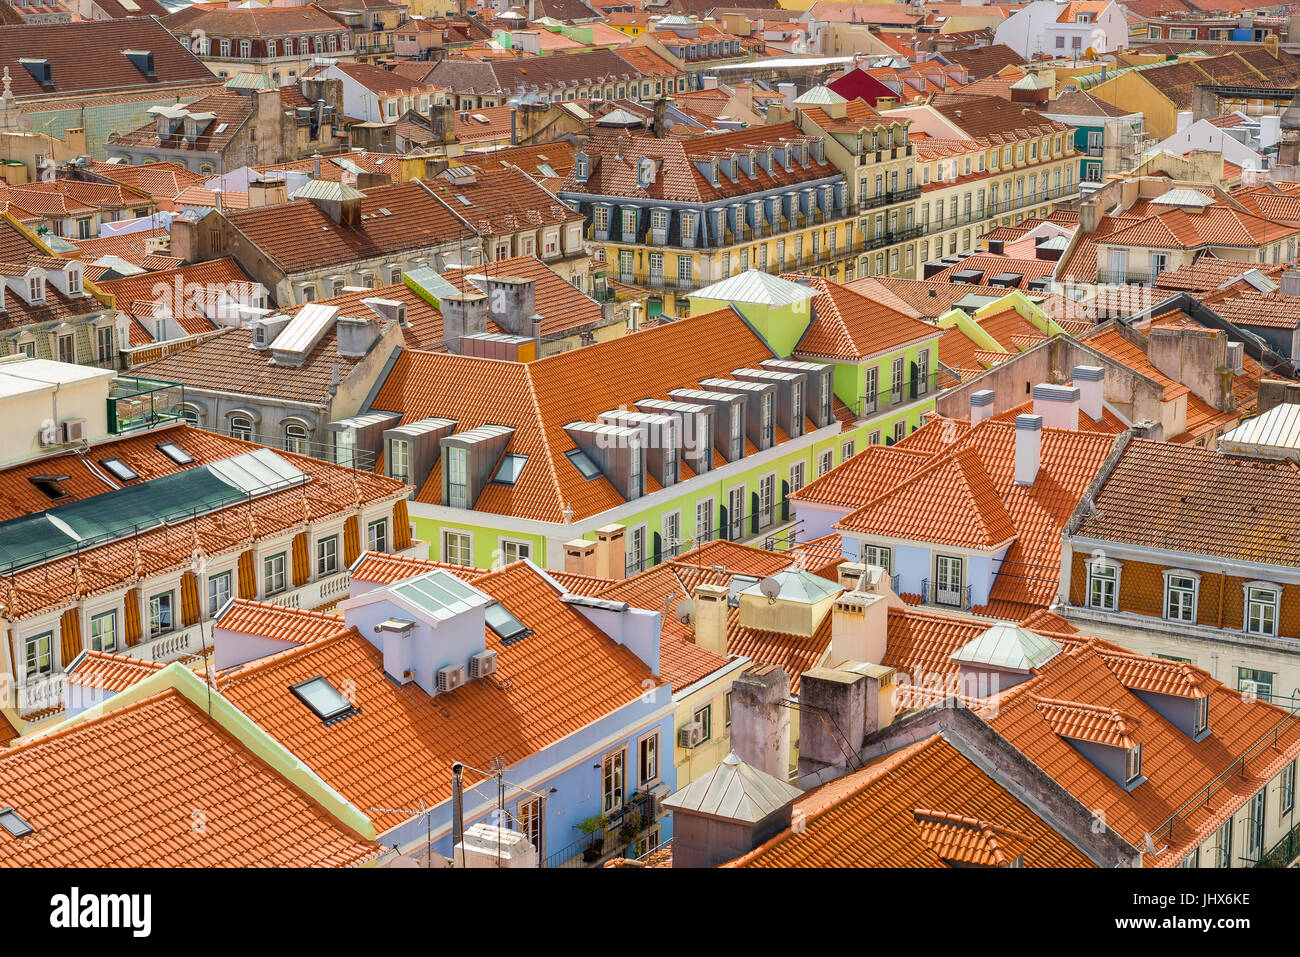 Lisbon Baixa, aeriel view of the Baixa district in the centre of the city of Lisbon, Portugal. - Stock Image